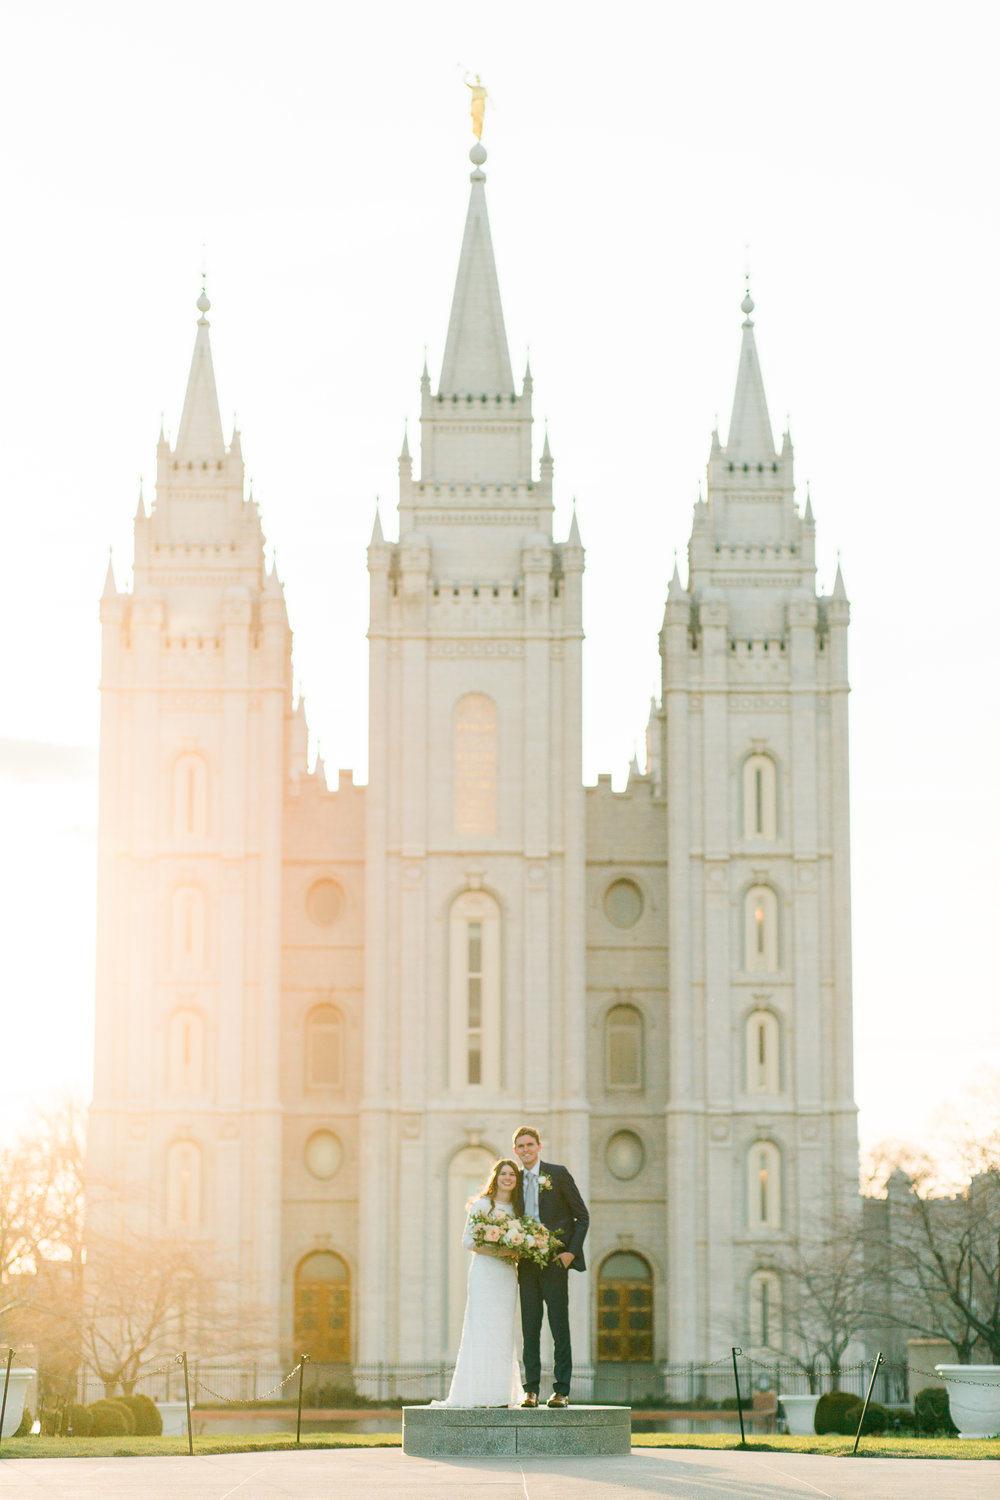 Eliza + Cody Bridals - Utah Wedding Photographer-40.jpg